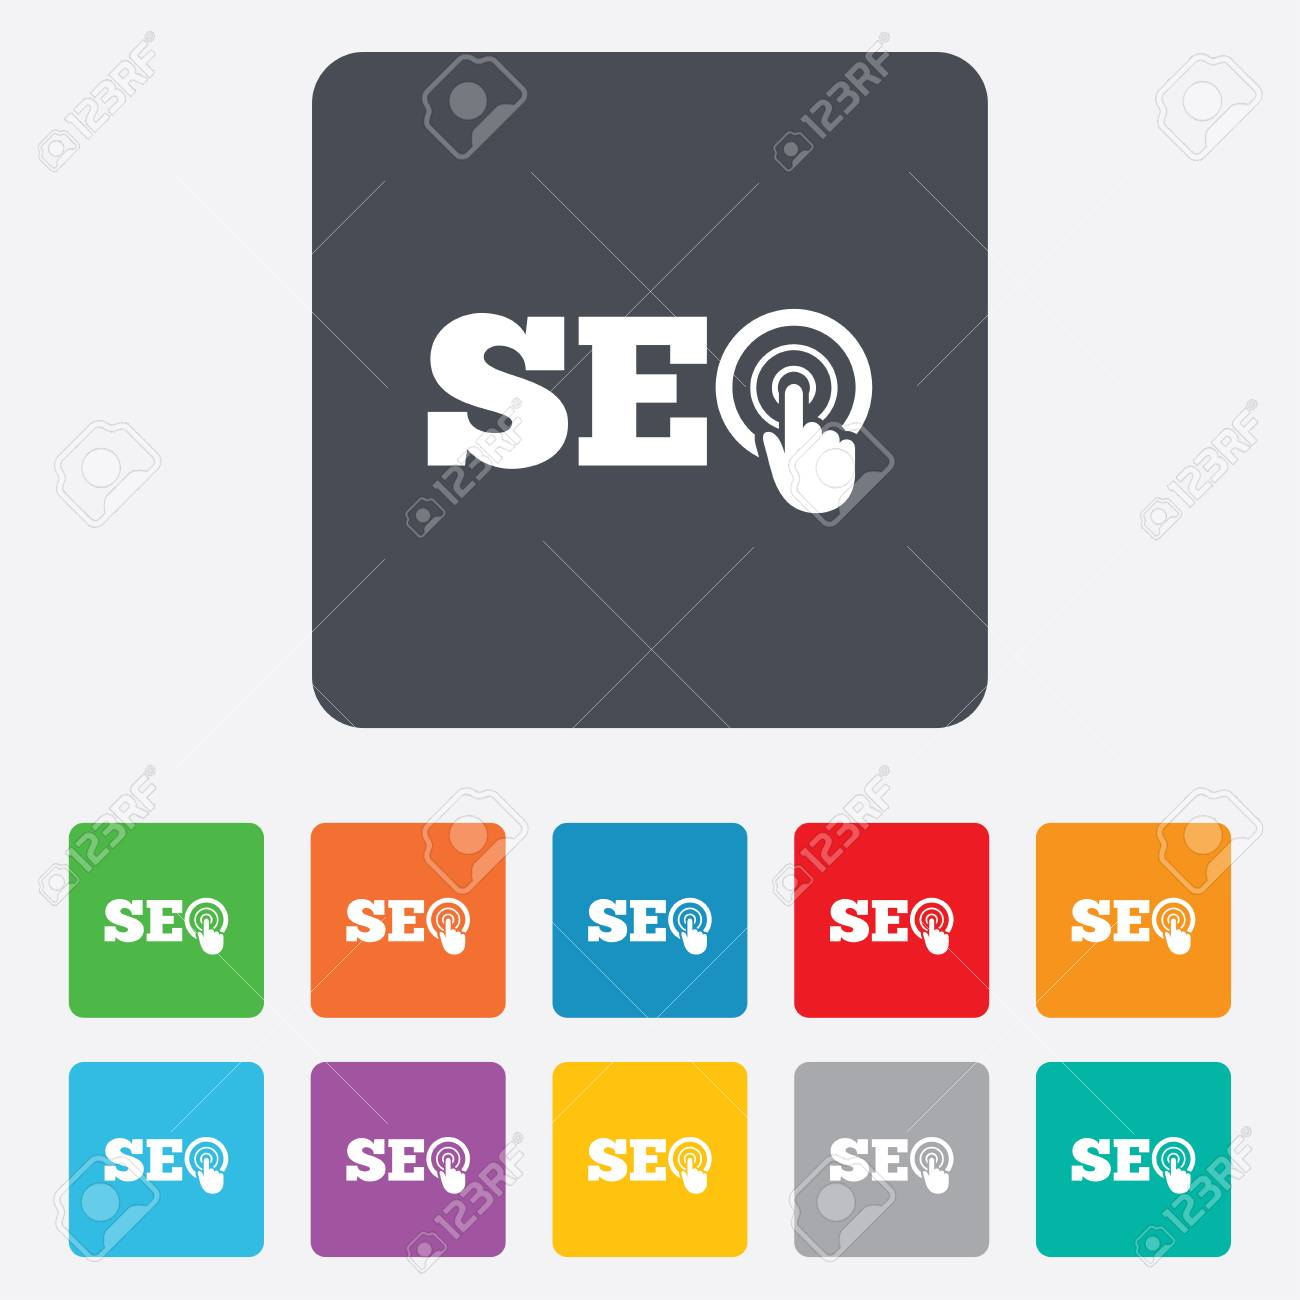 SEO sign icon  Search Engine Optimization symbol  Rounded squares